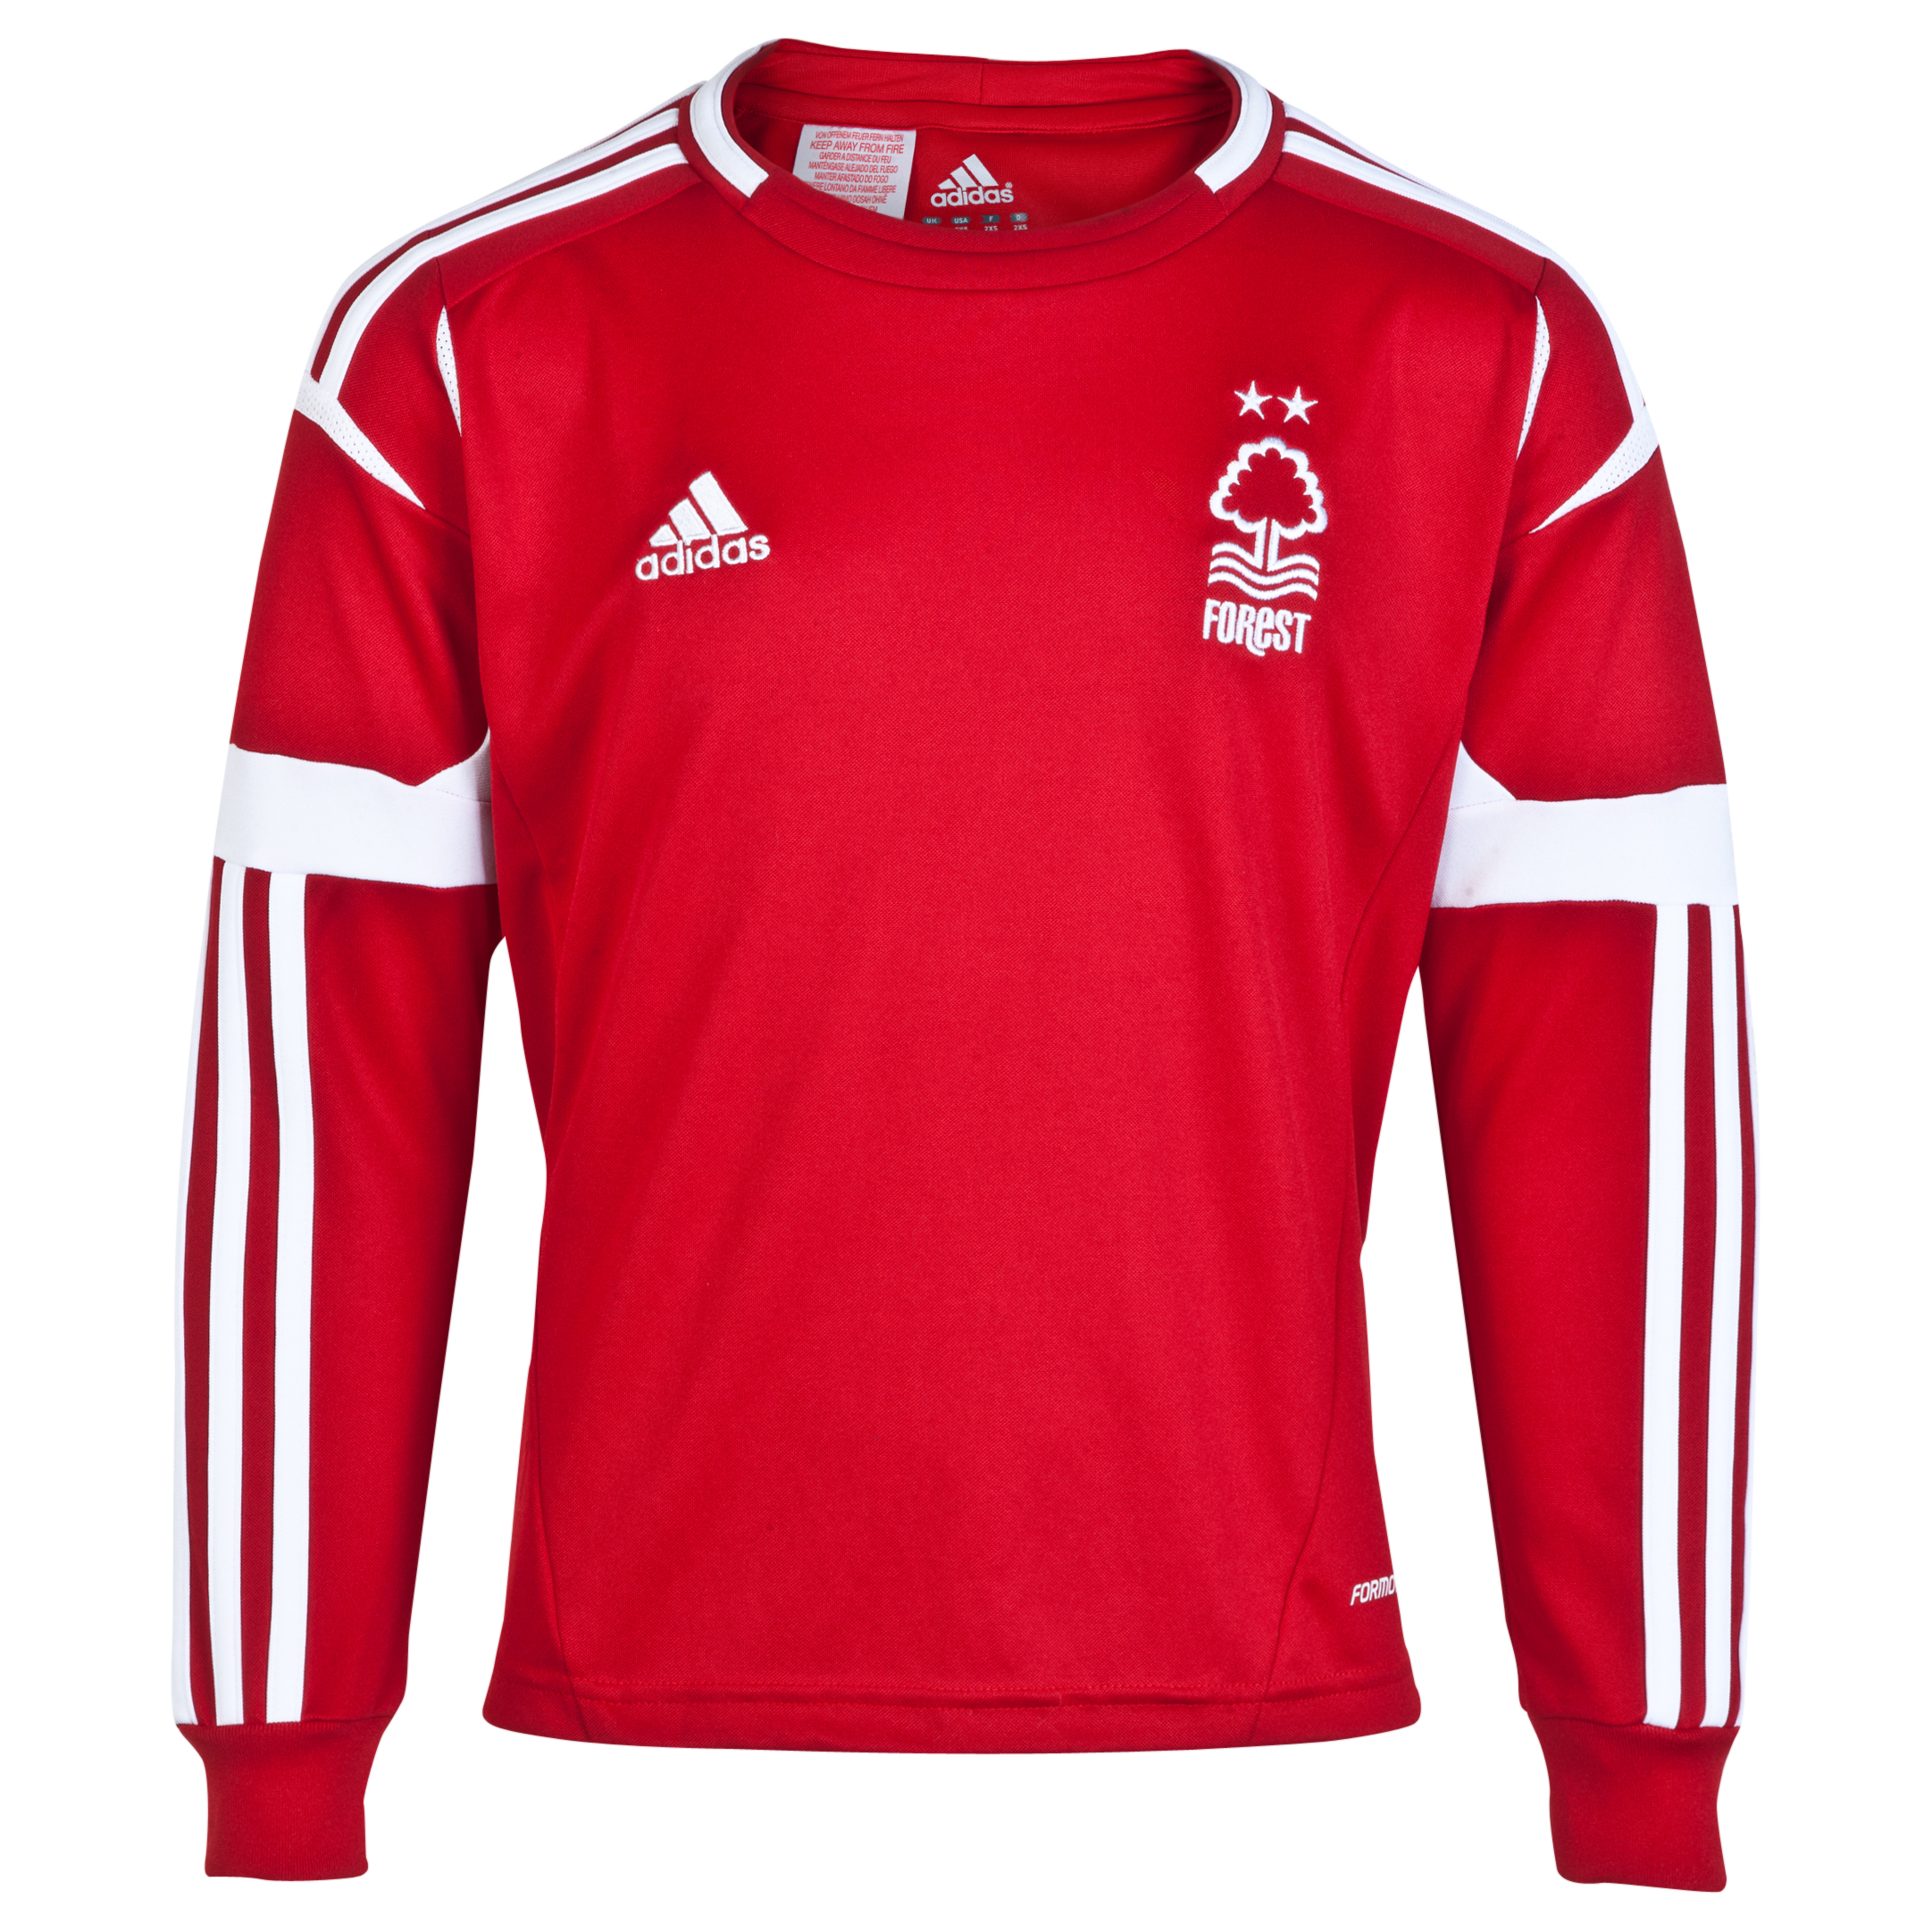 Nottingham Forest Home Shirt 2013/14 - Long Sleeved - Junior